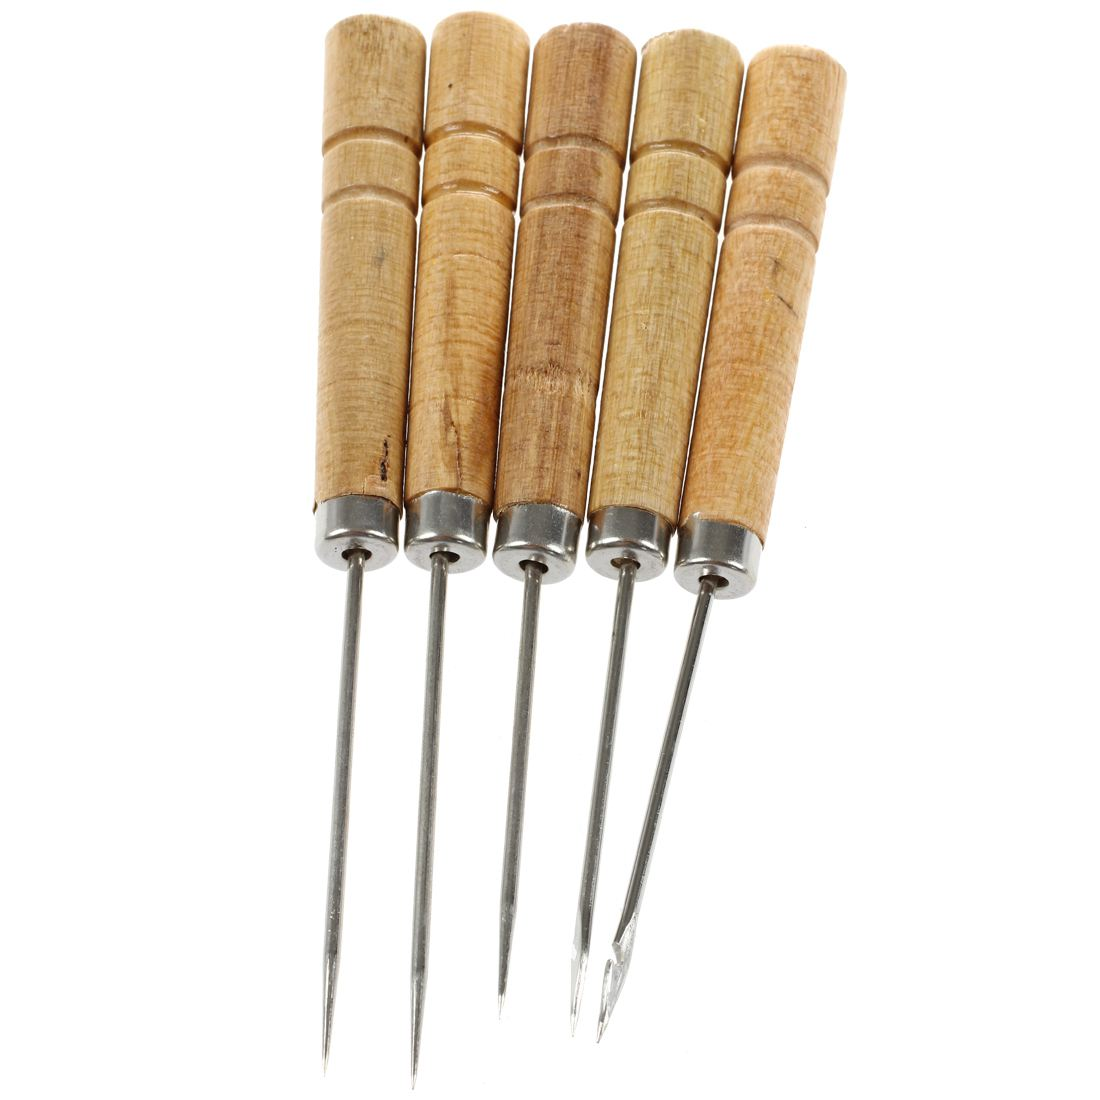 5 Pcs Wooden Handle Metal Curved Needle Hand Needleer Sewing Awl